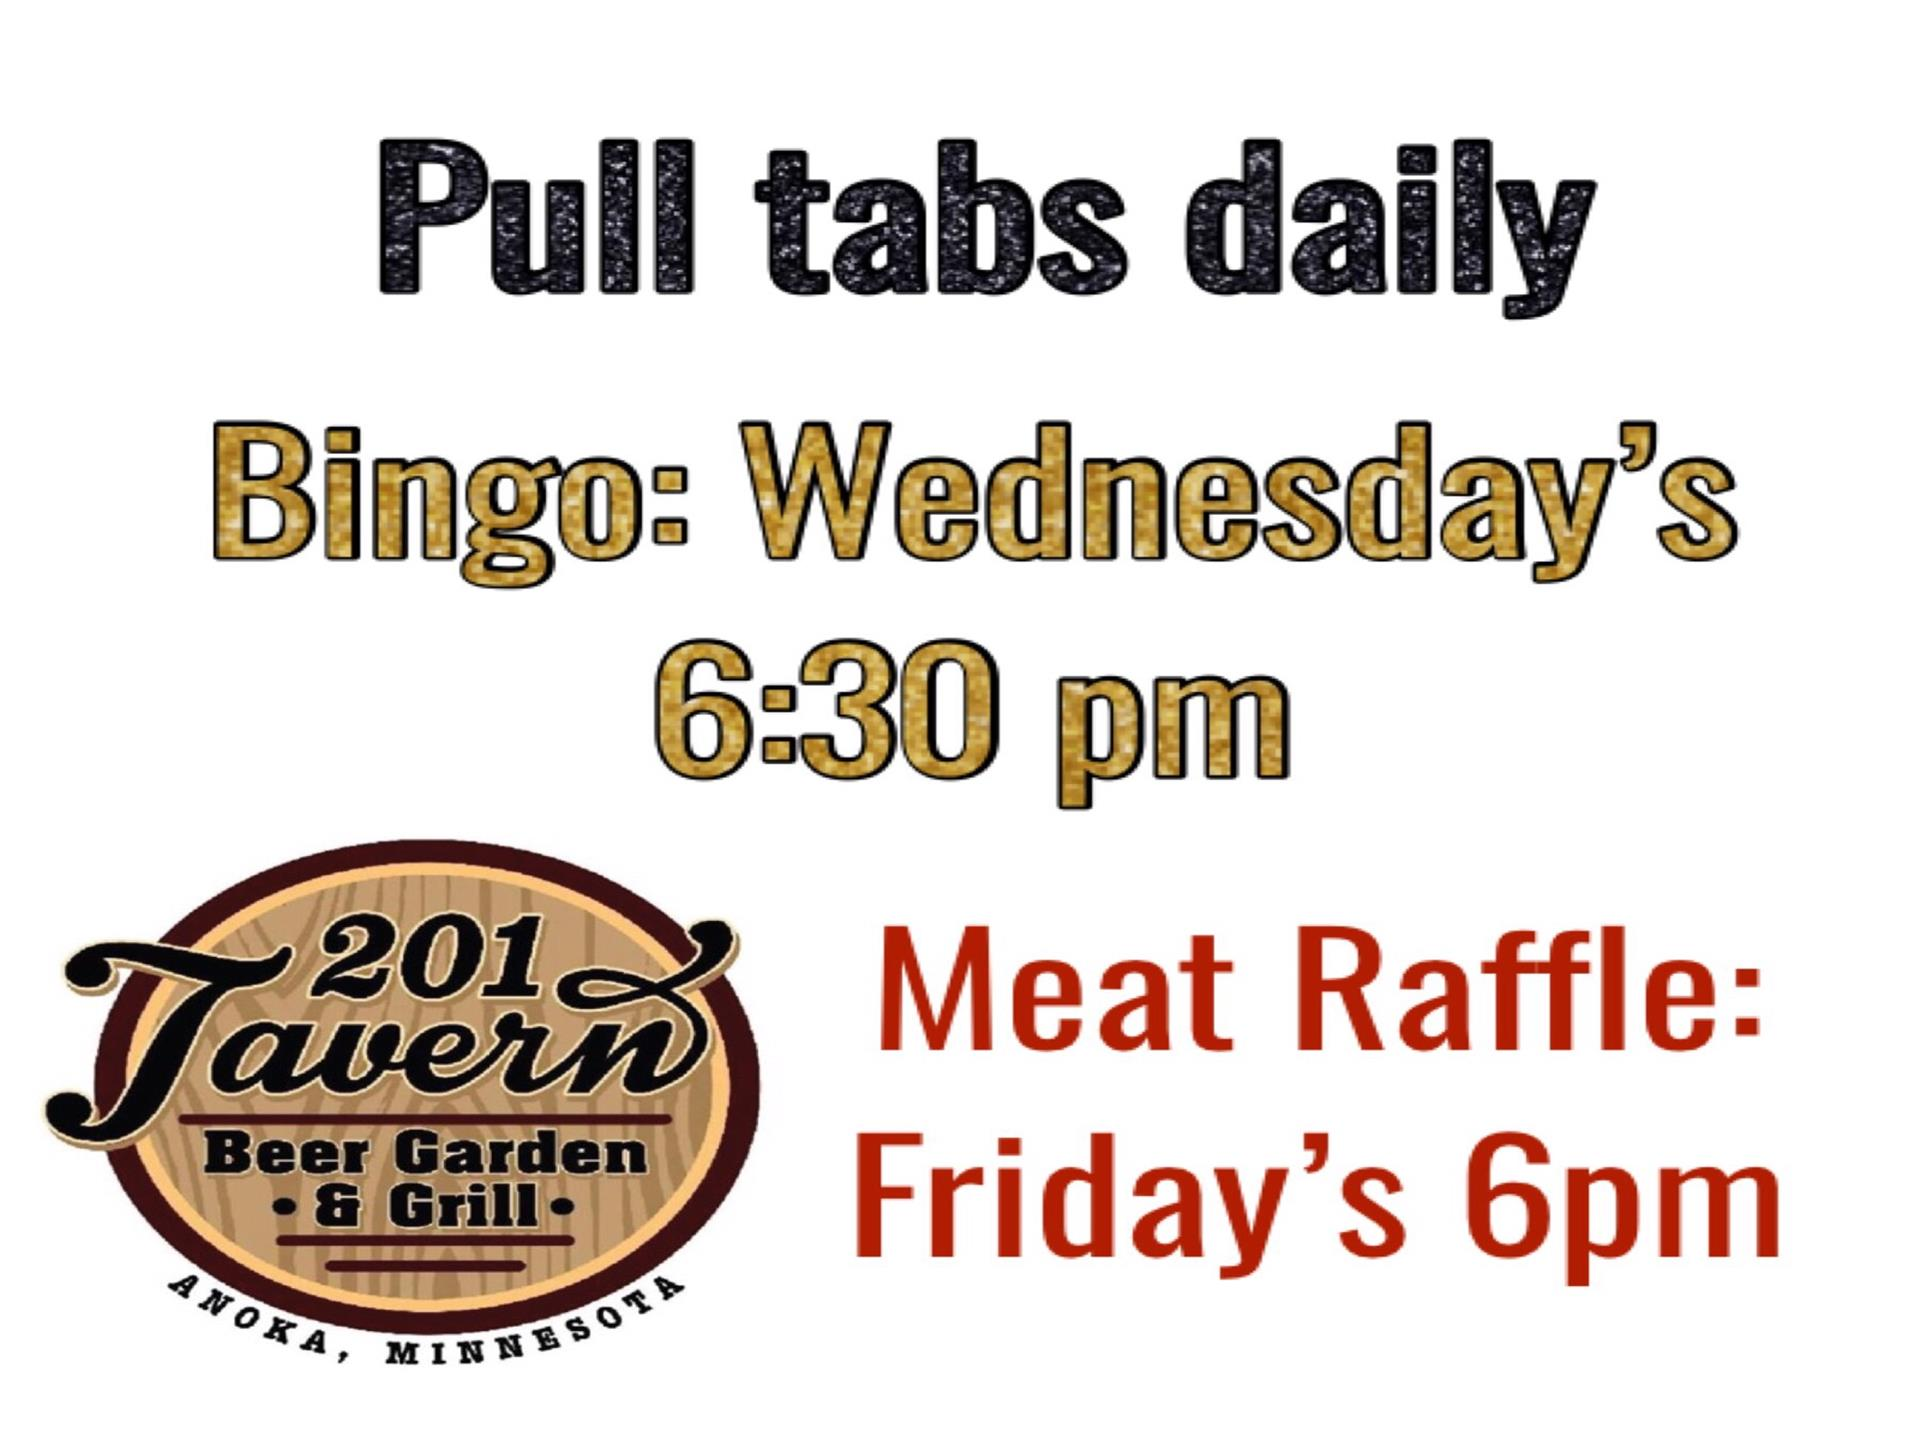 Pull tabs daily. Bingo on Wednesday's at 6:30 Pm. Meat raffle on Friday's 6pm